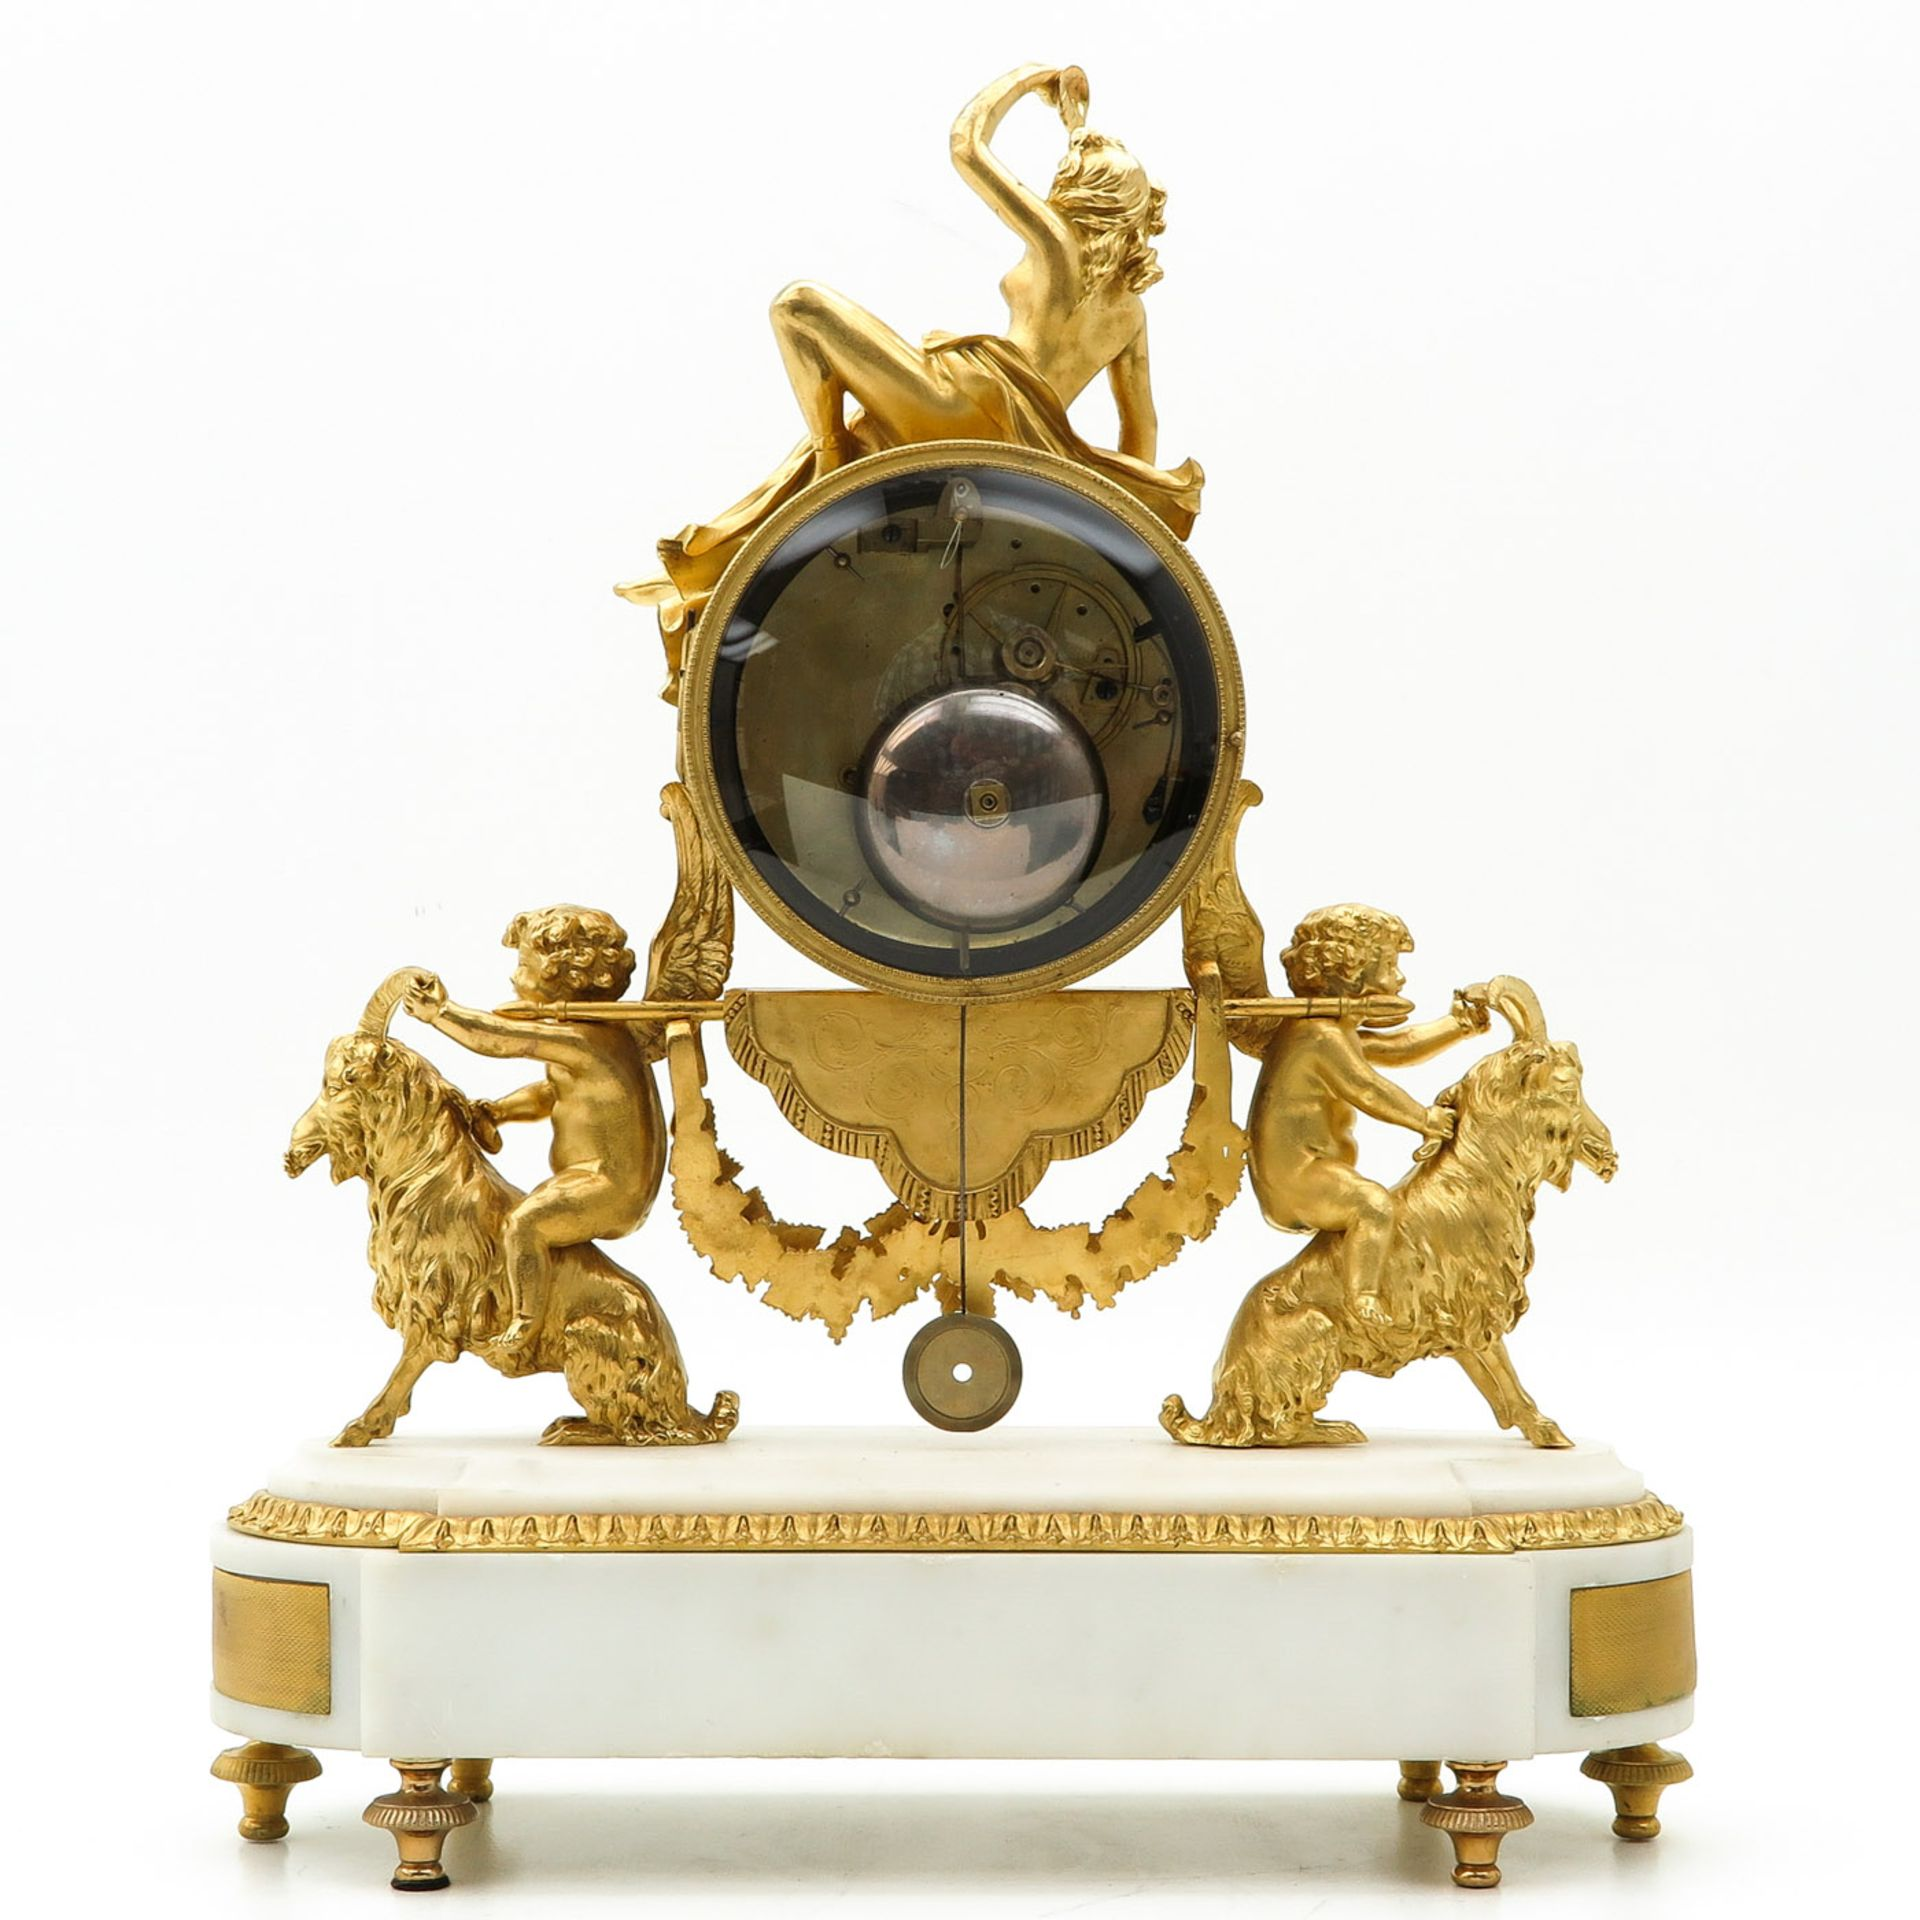 Los 1175 - A Signed 19th Century French Pendulum